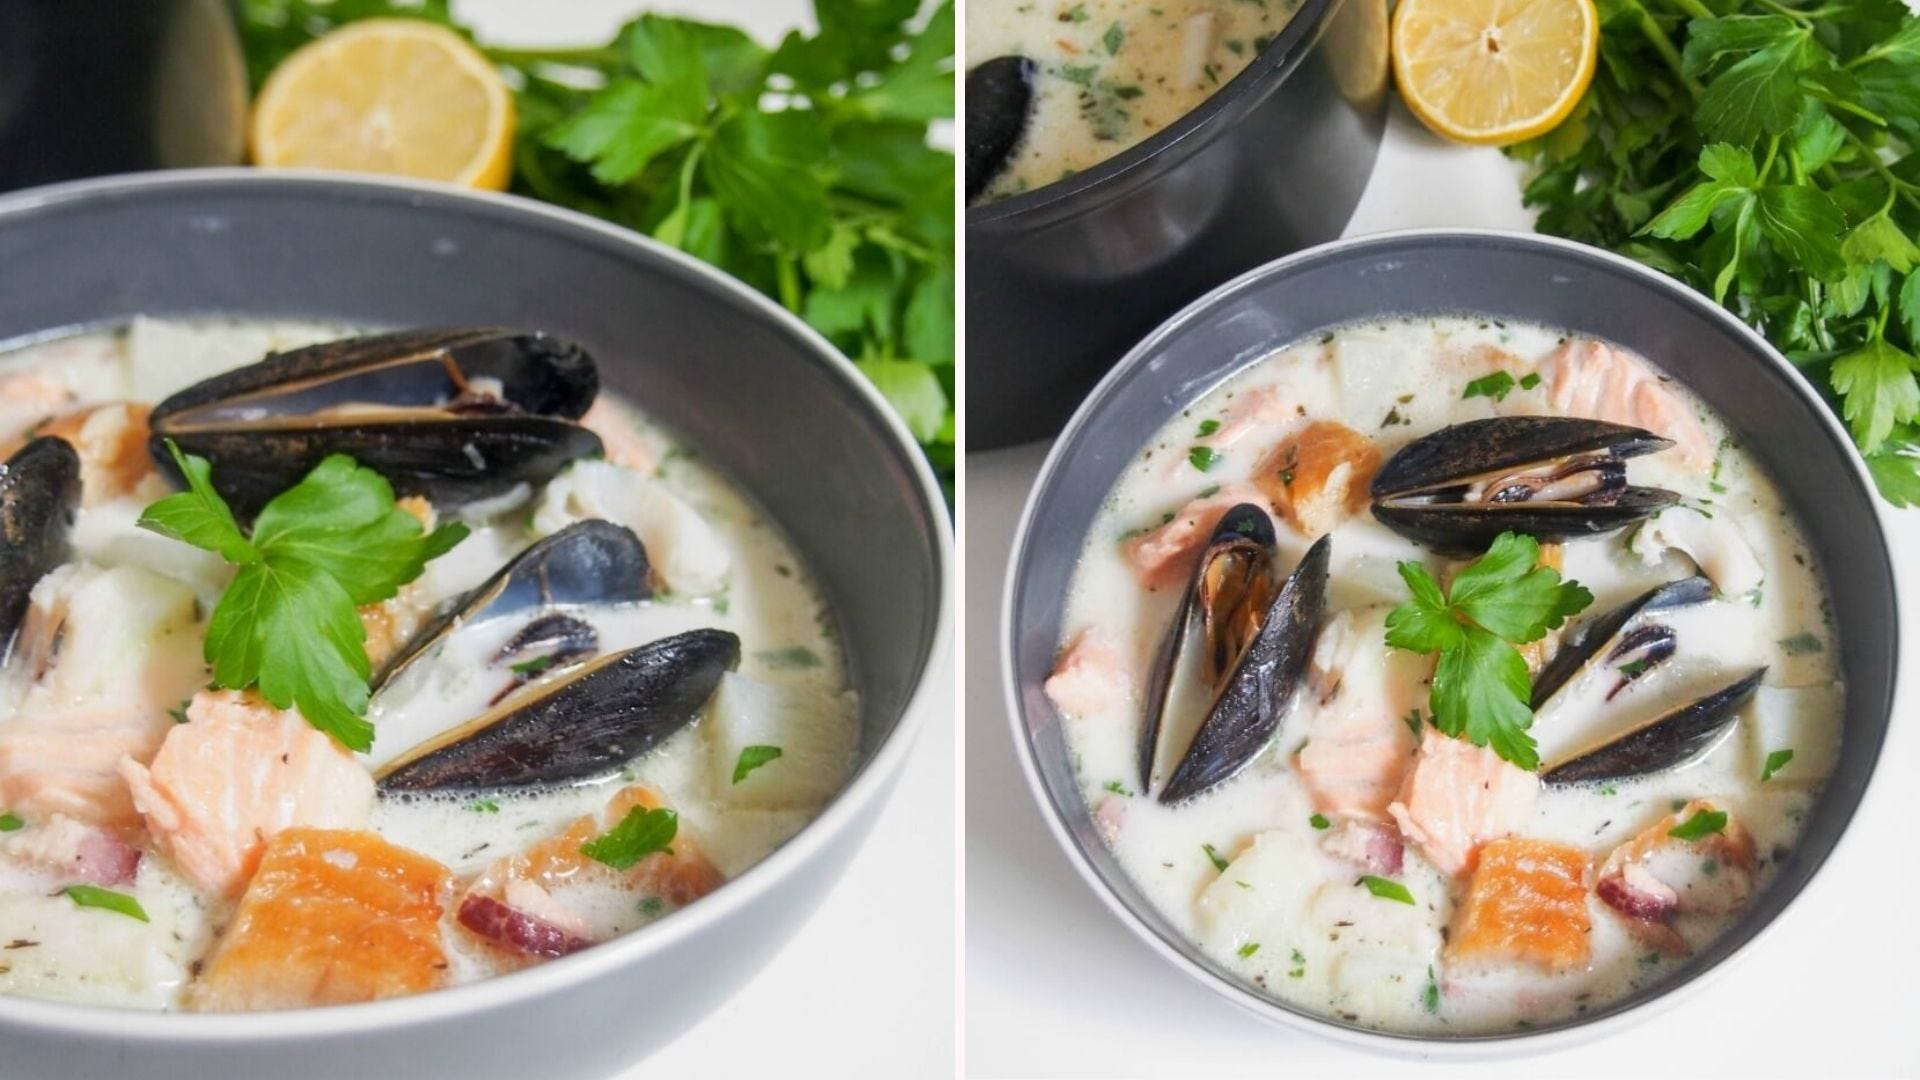 Two bowls of Irish Fish Chowder filled with salmon, muscles, potatoes, and bacon, with lemon and parsley on the side.